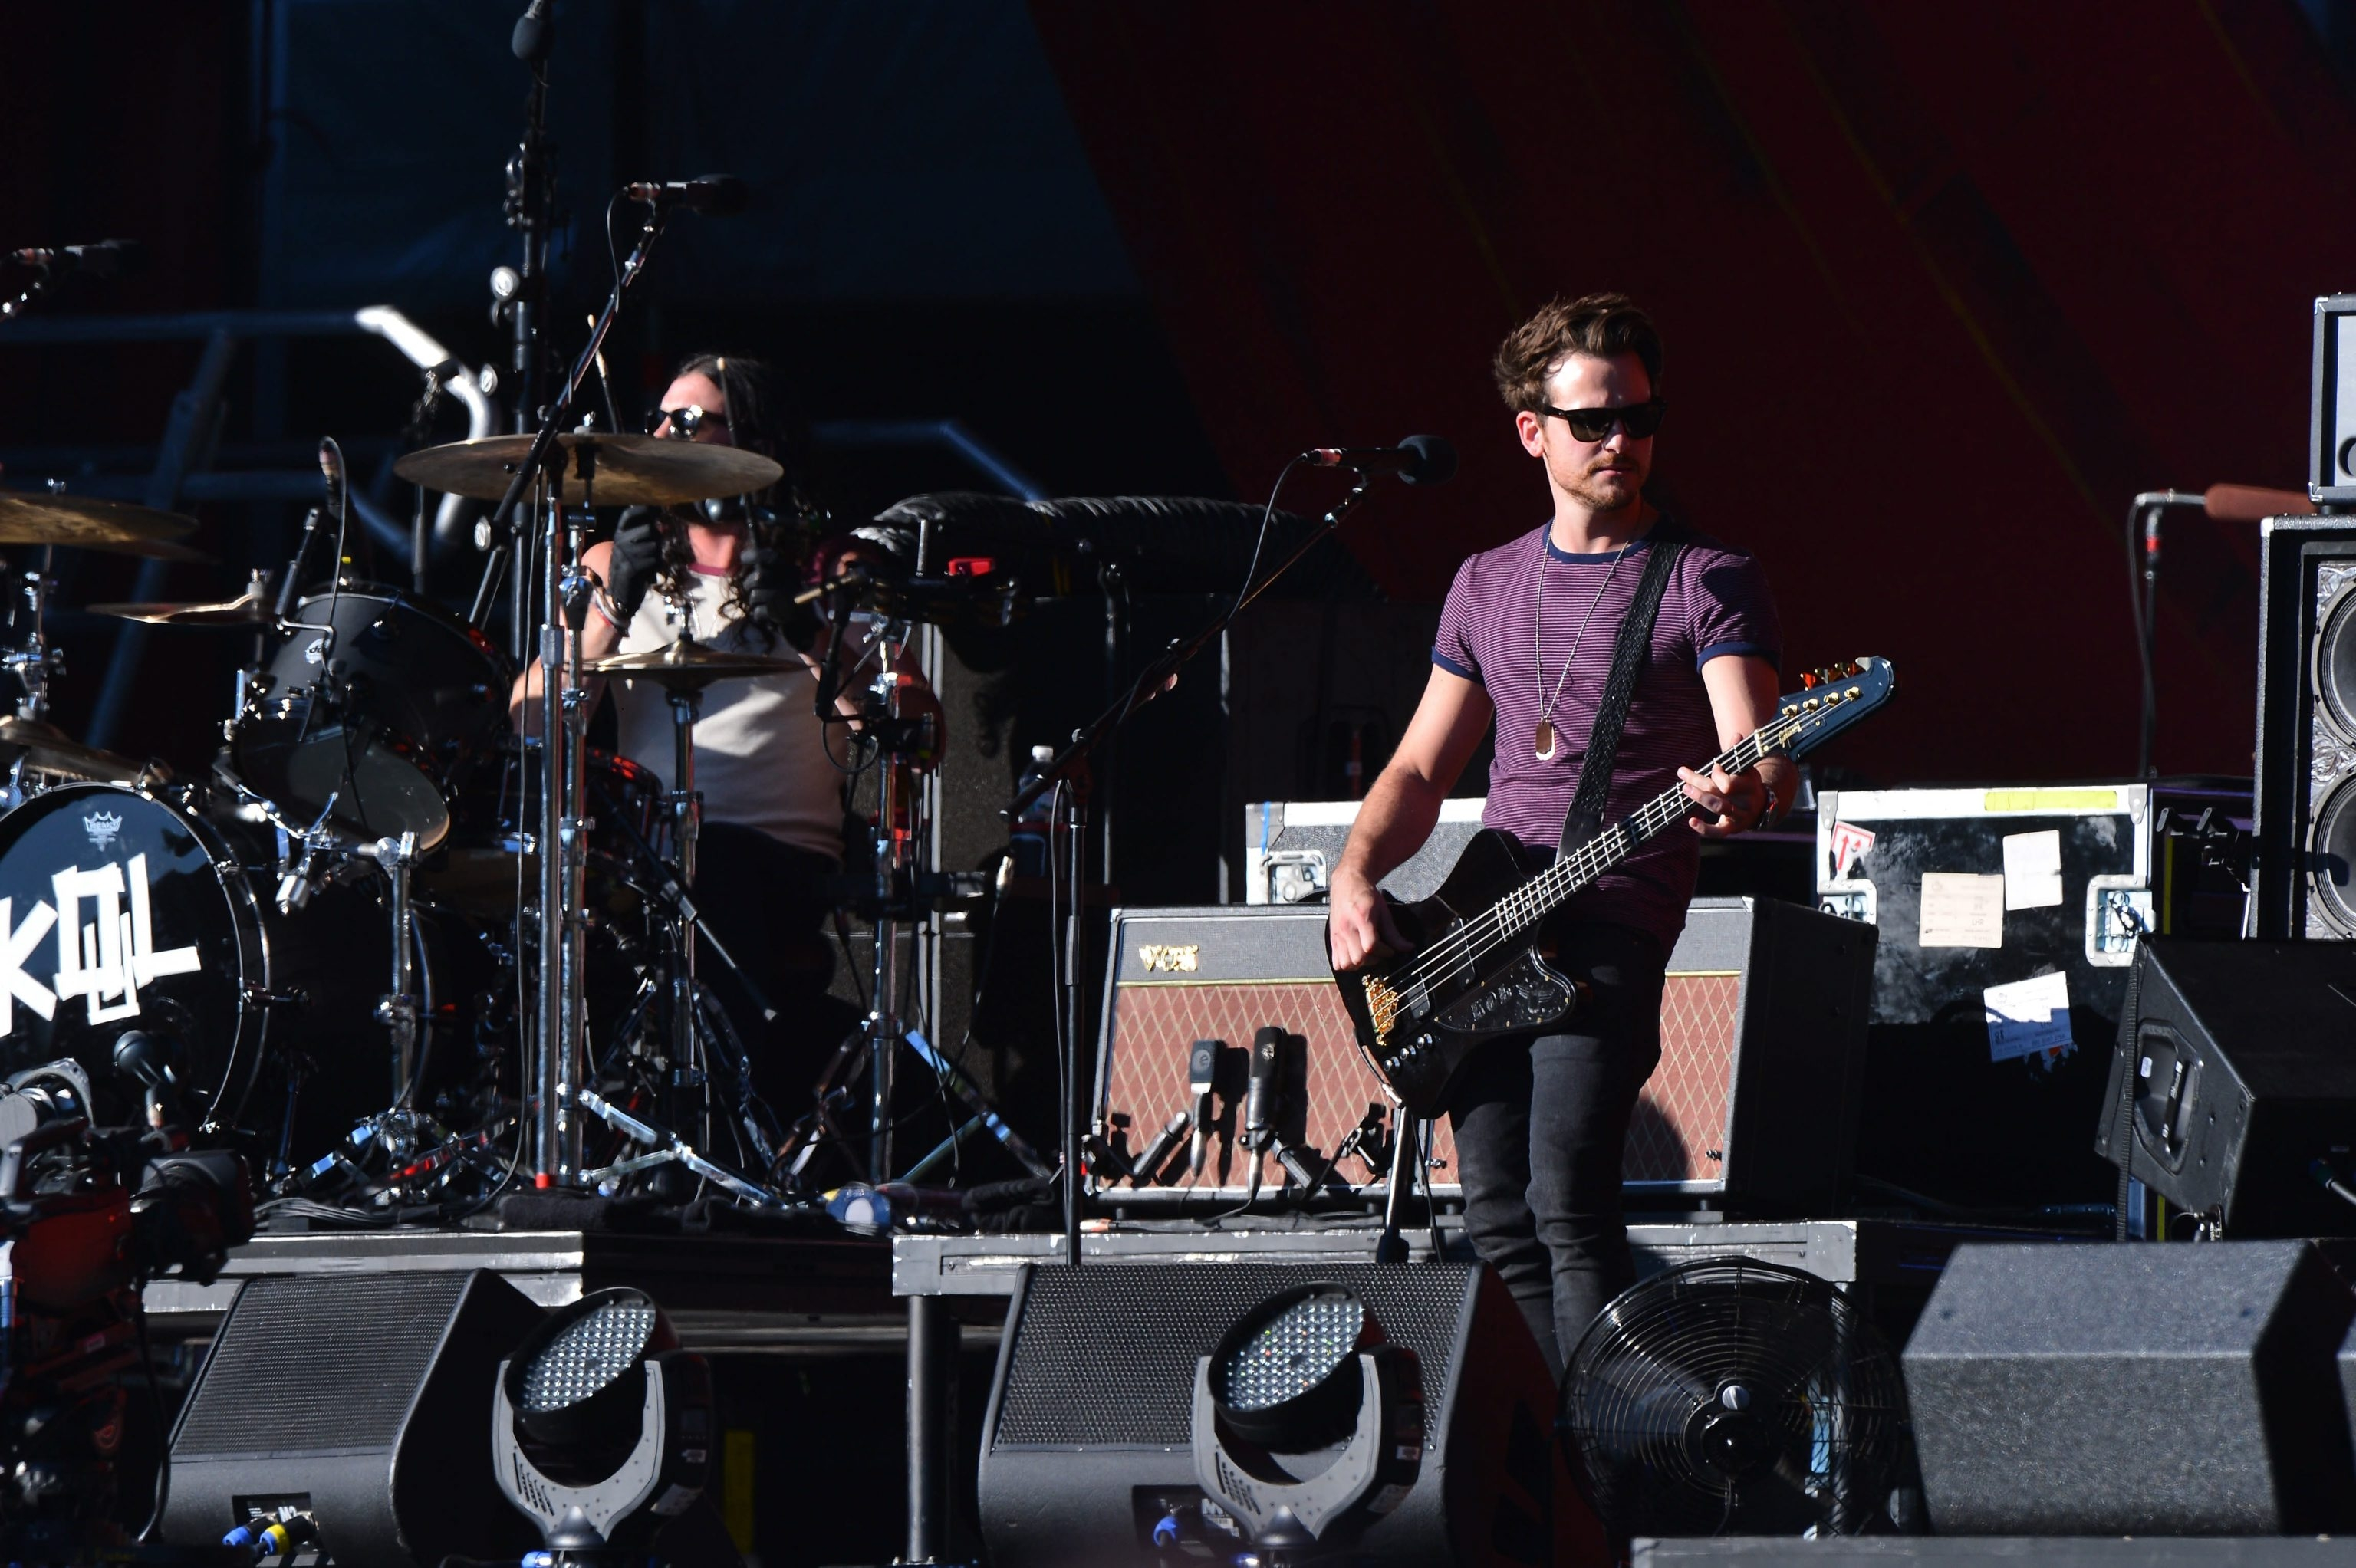 Drummer Nathan Followill, left, and bassist Jared Followill of Kings of Leon perform at the 2013 Global Citizen Festival in Central Park to end extreme poverty on September 28, 2013 in New York, United States.